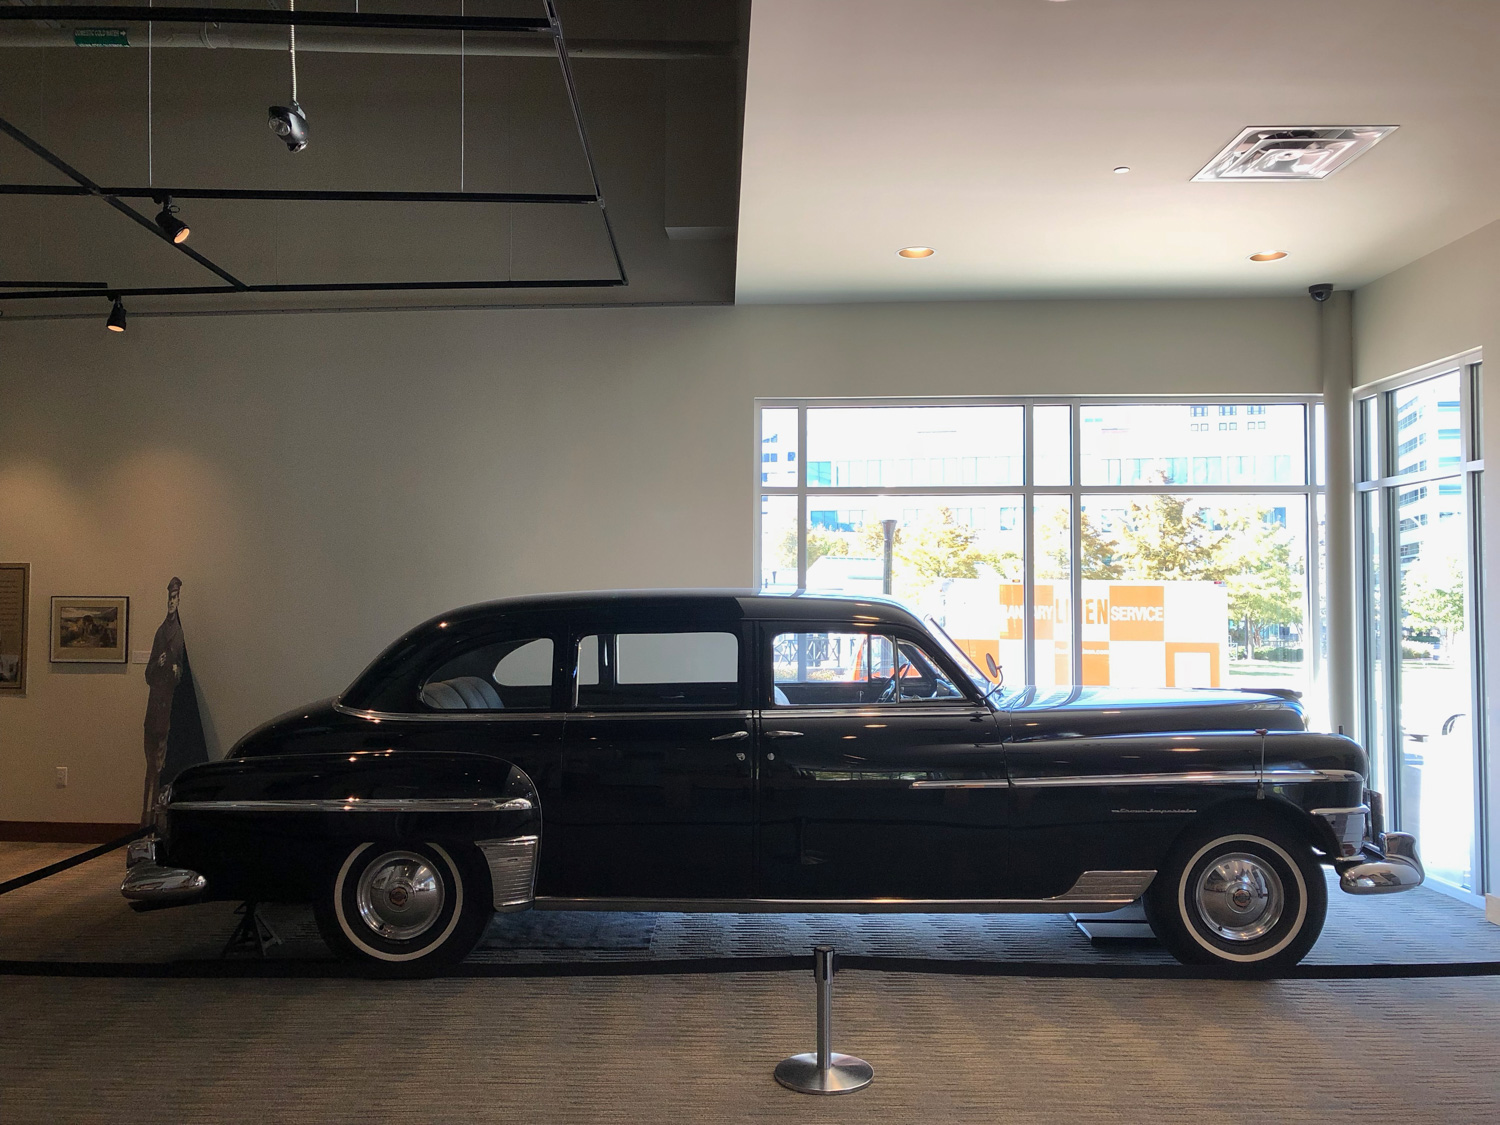 MacArthur's 1950 Chrysler Crown Imperial limousine as it appears today at the MacArthur Memorial in Norfolk, Virginia. It is currently jacked up to preserve the original tires, and the entire car is original and unrestored.